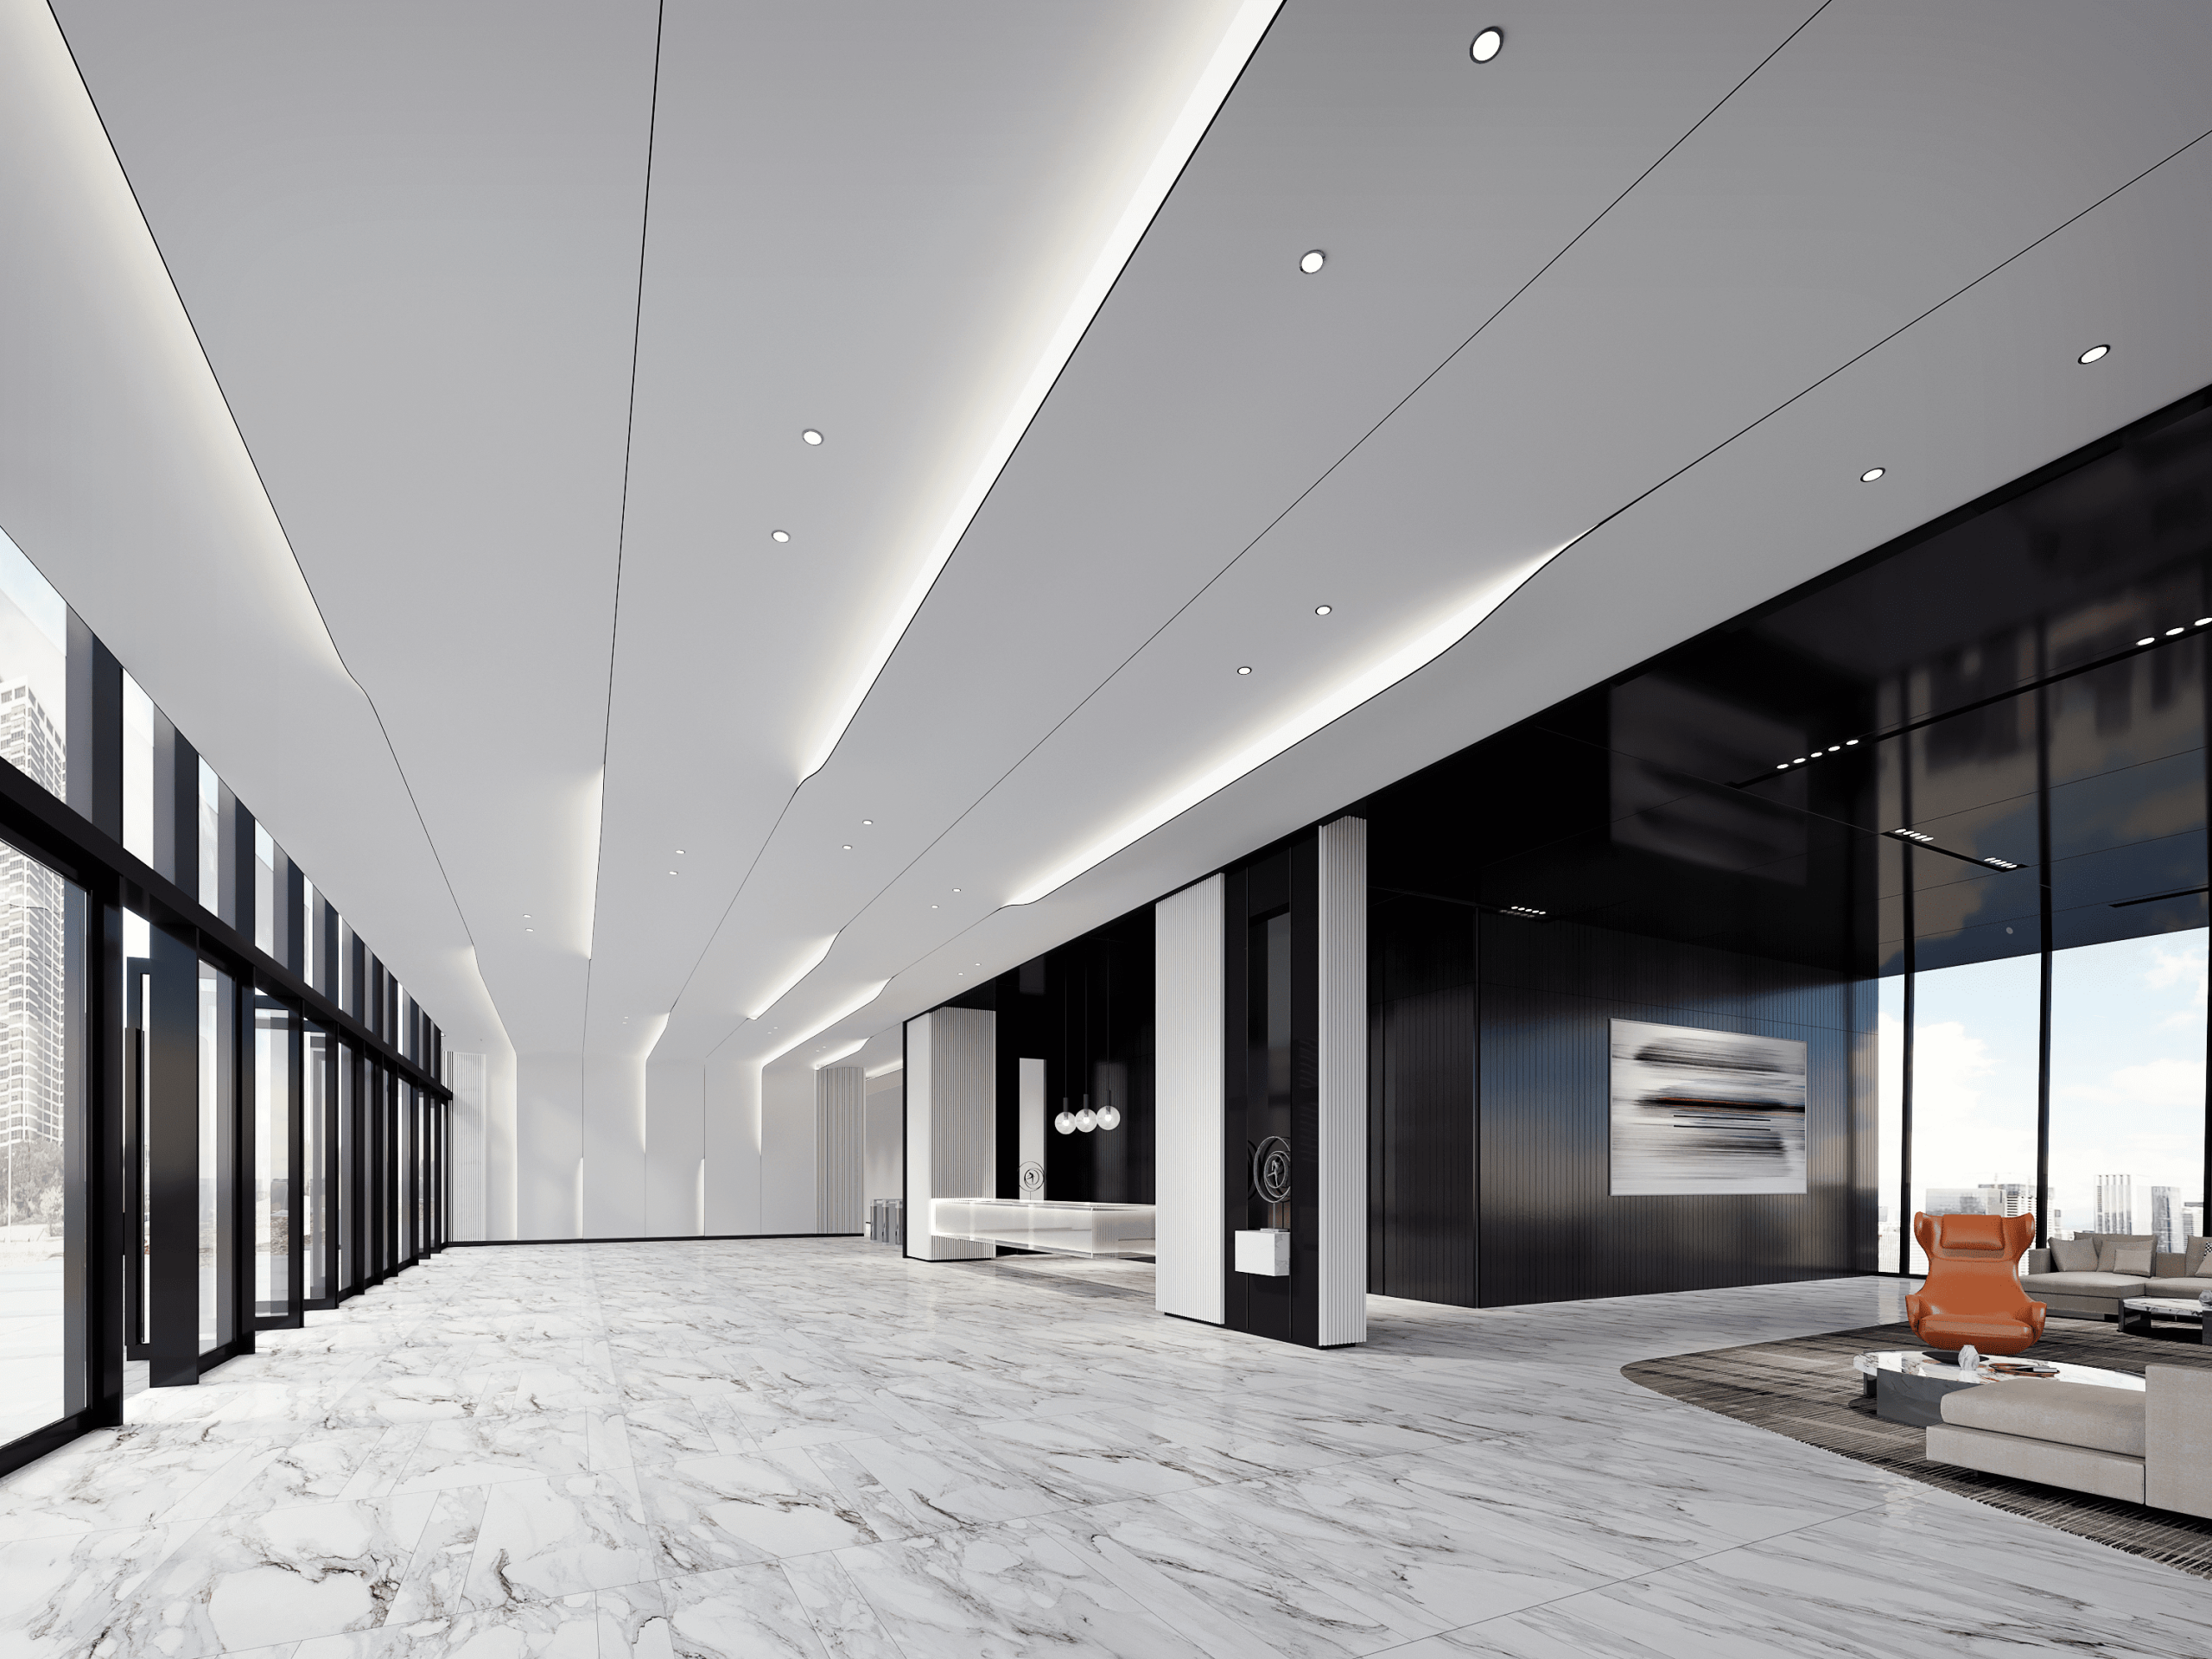 3d office lobby design rendering:Have you seen a striking 3d office lobby rendering?